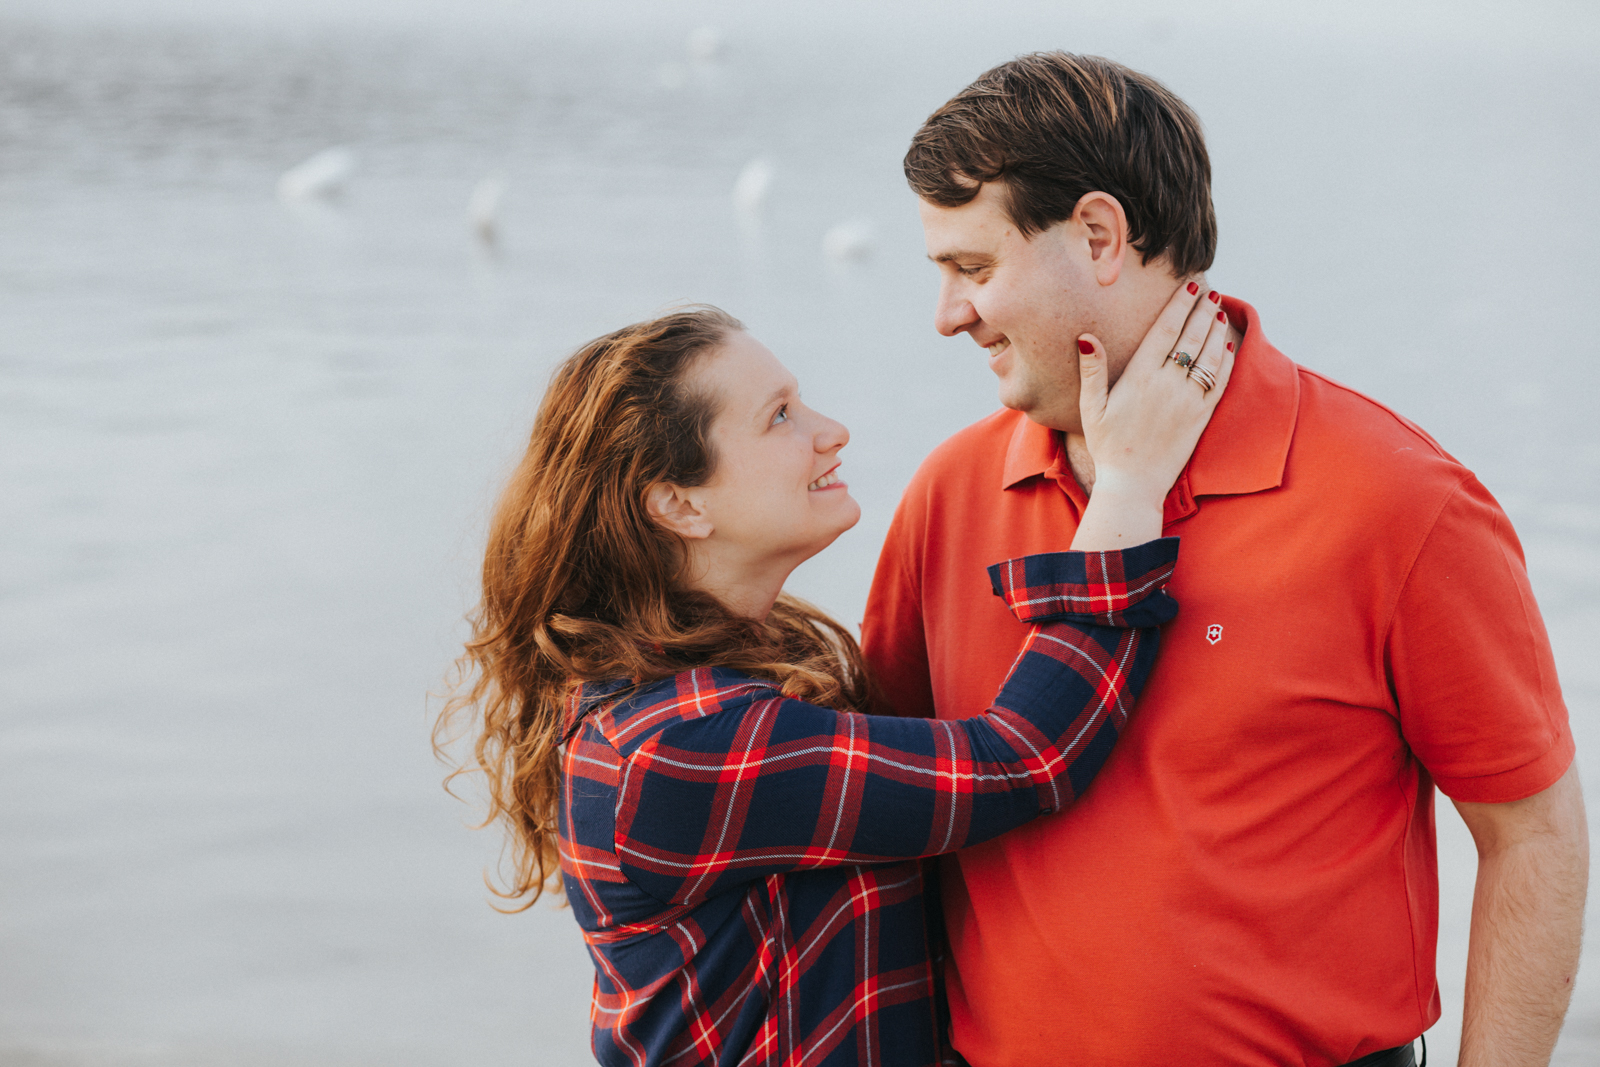 The Hill Family, Candlewood Lake - Victoria Way Photography